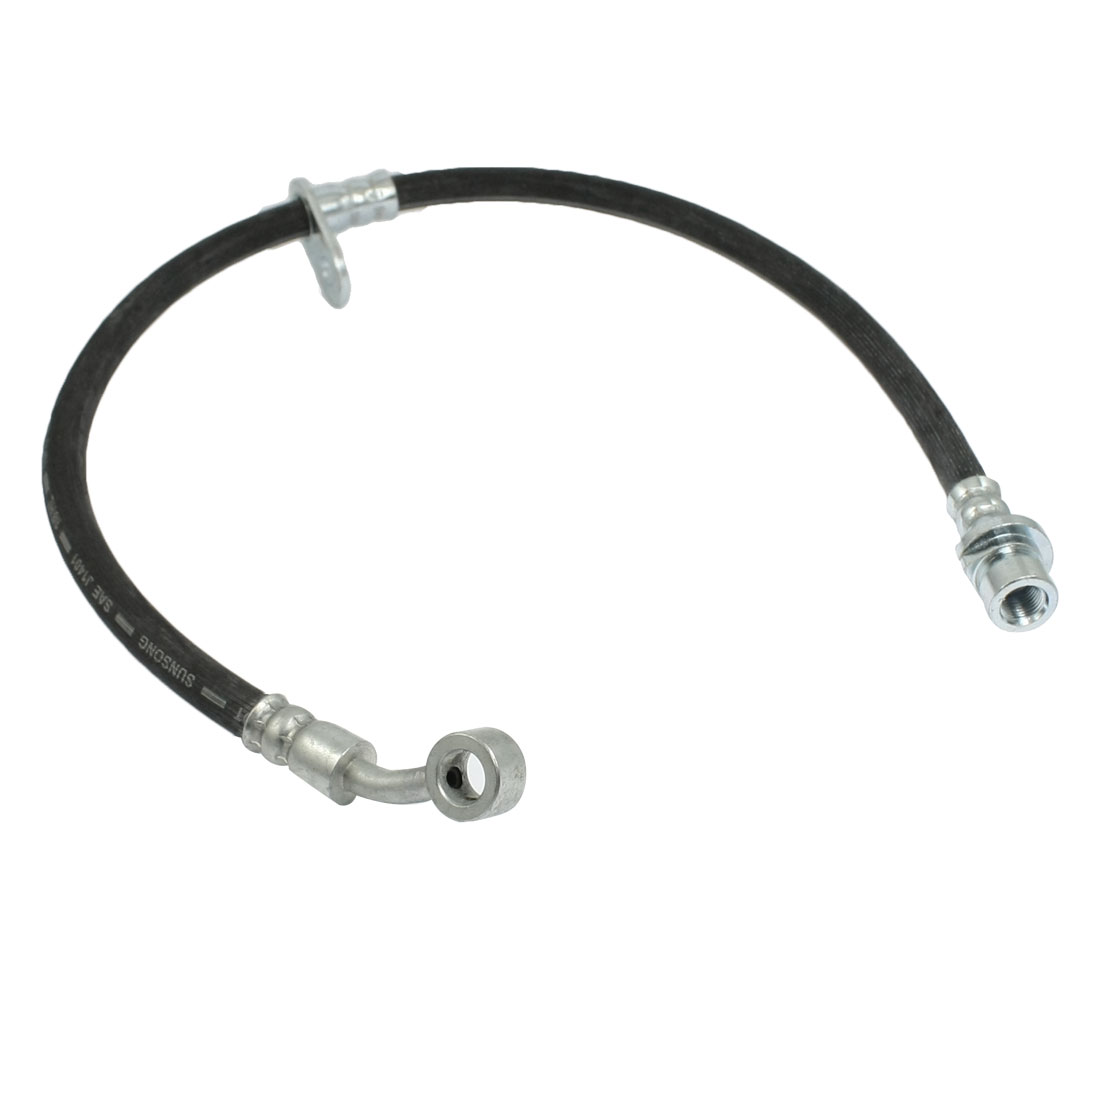 Flexible Left Side Front Brake Hose Wire Cable Replacement 01465-S9A-000